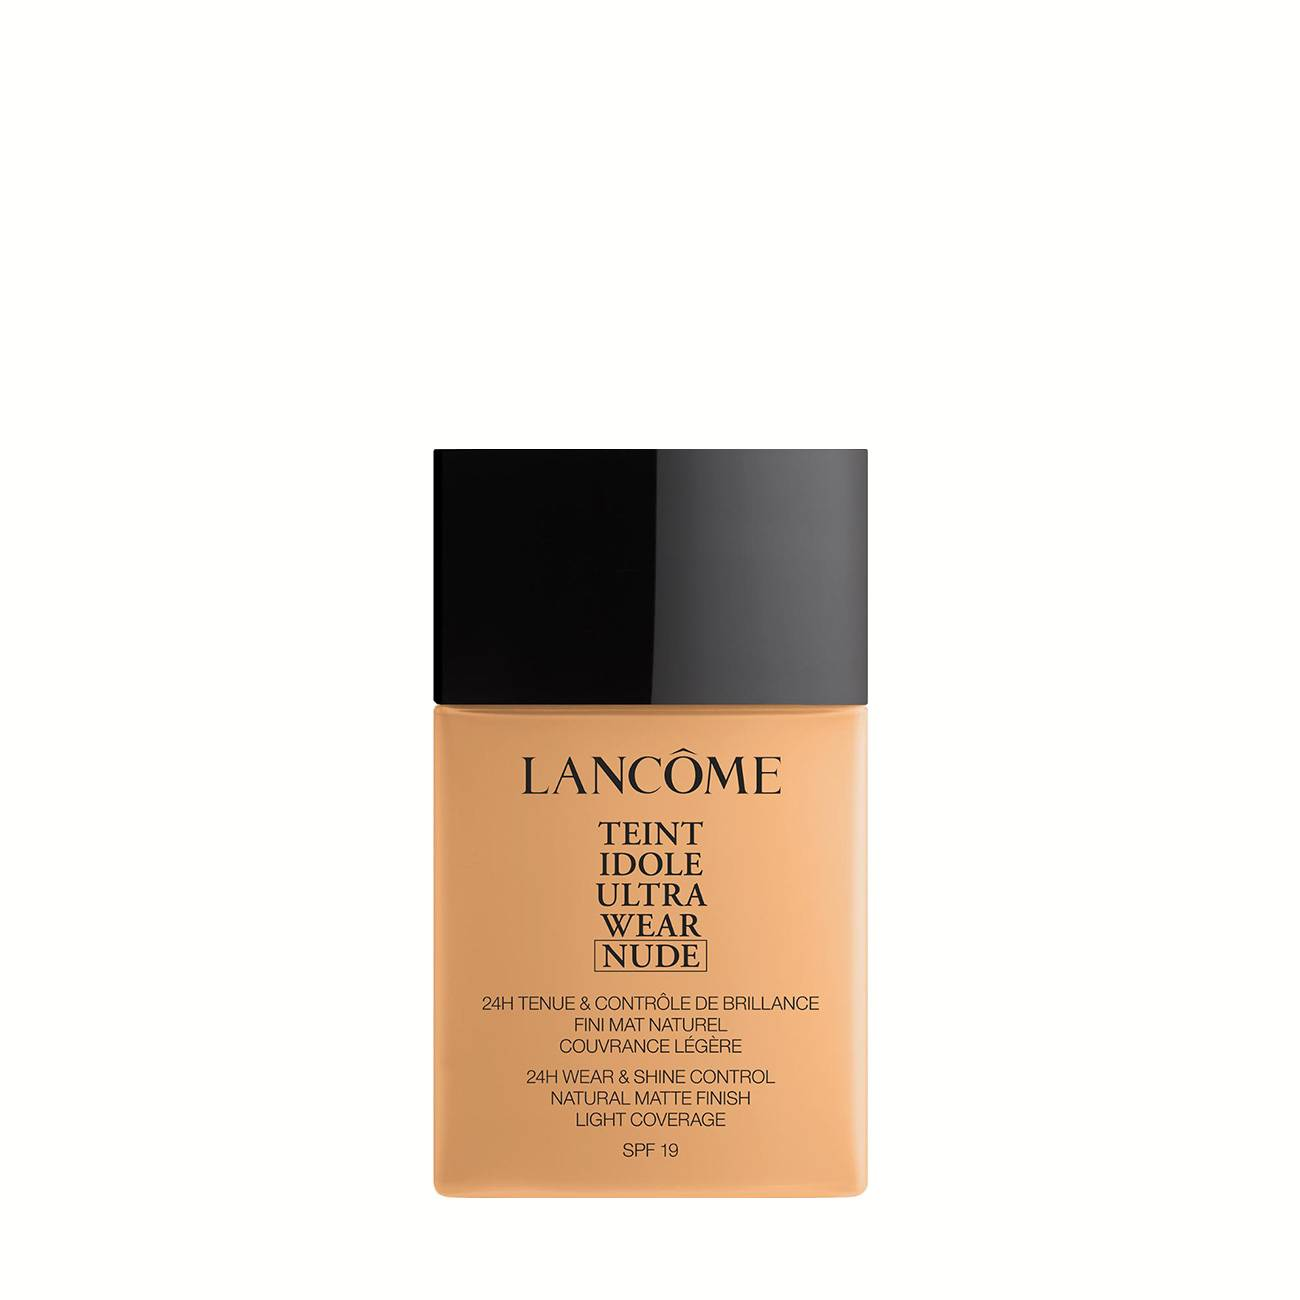 Teint Idole Ultra Wear Nude 05 40ml Lancôme imagine 2021 bestvalue.eu